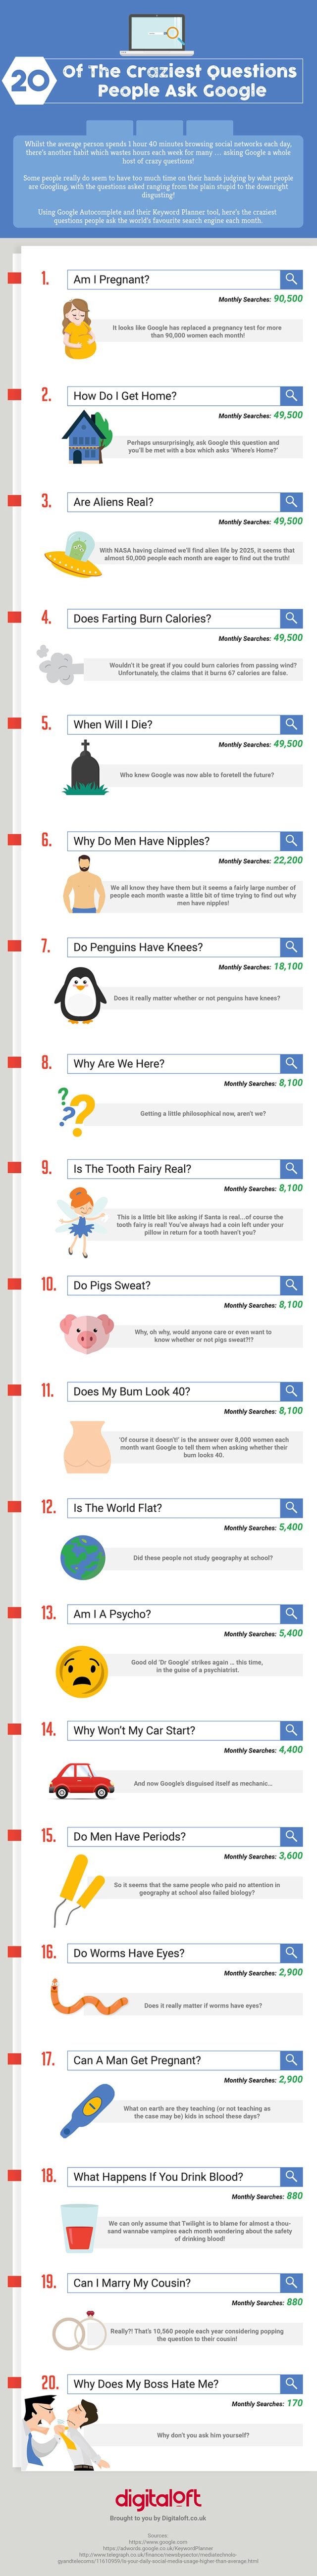 20 of the Craziest Questions People Ask Google